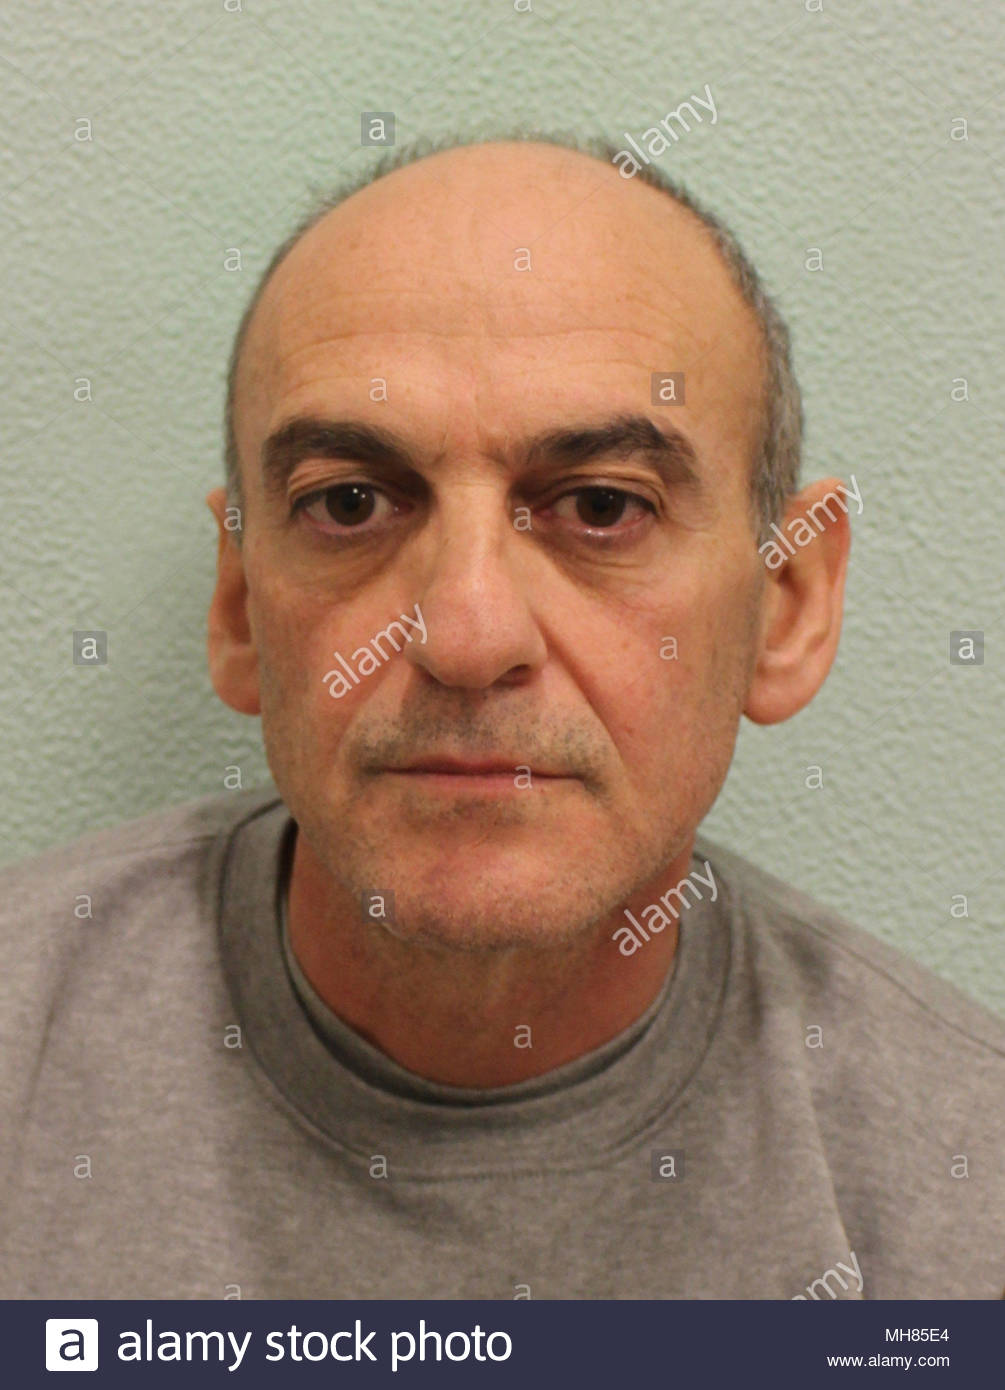 """Metropolitan Police undated handout file photo of """"deceitful and manipulative"""" father Robert Peters, 56, who has been jailed at the Old Bailey for life with a minimum term of 24 years for strangling his seven-year-old daughter Sophia. - Stock Image"""